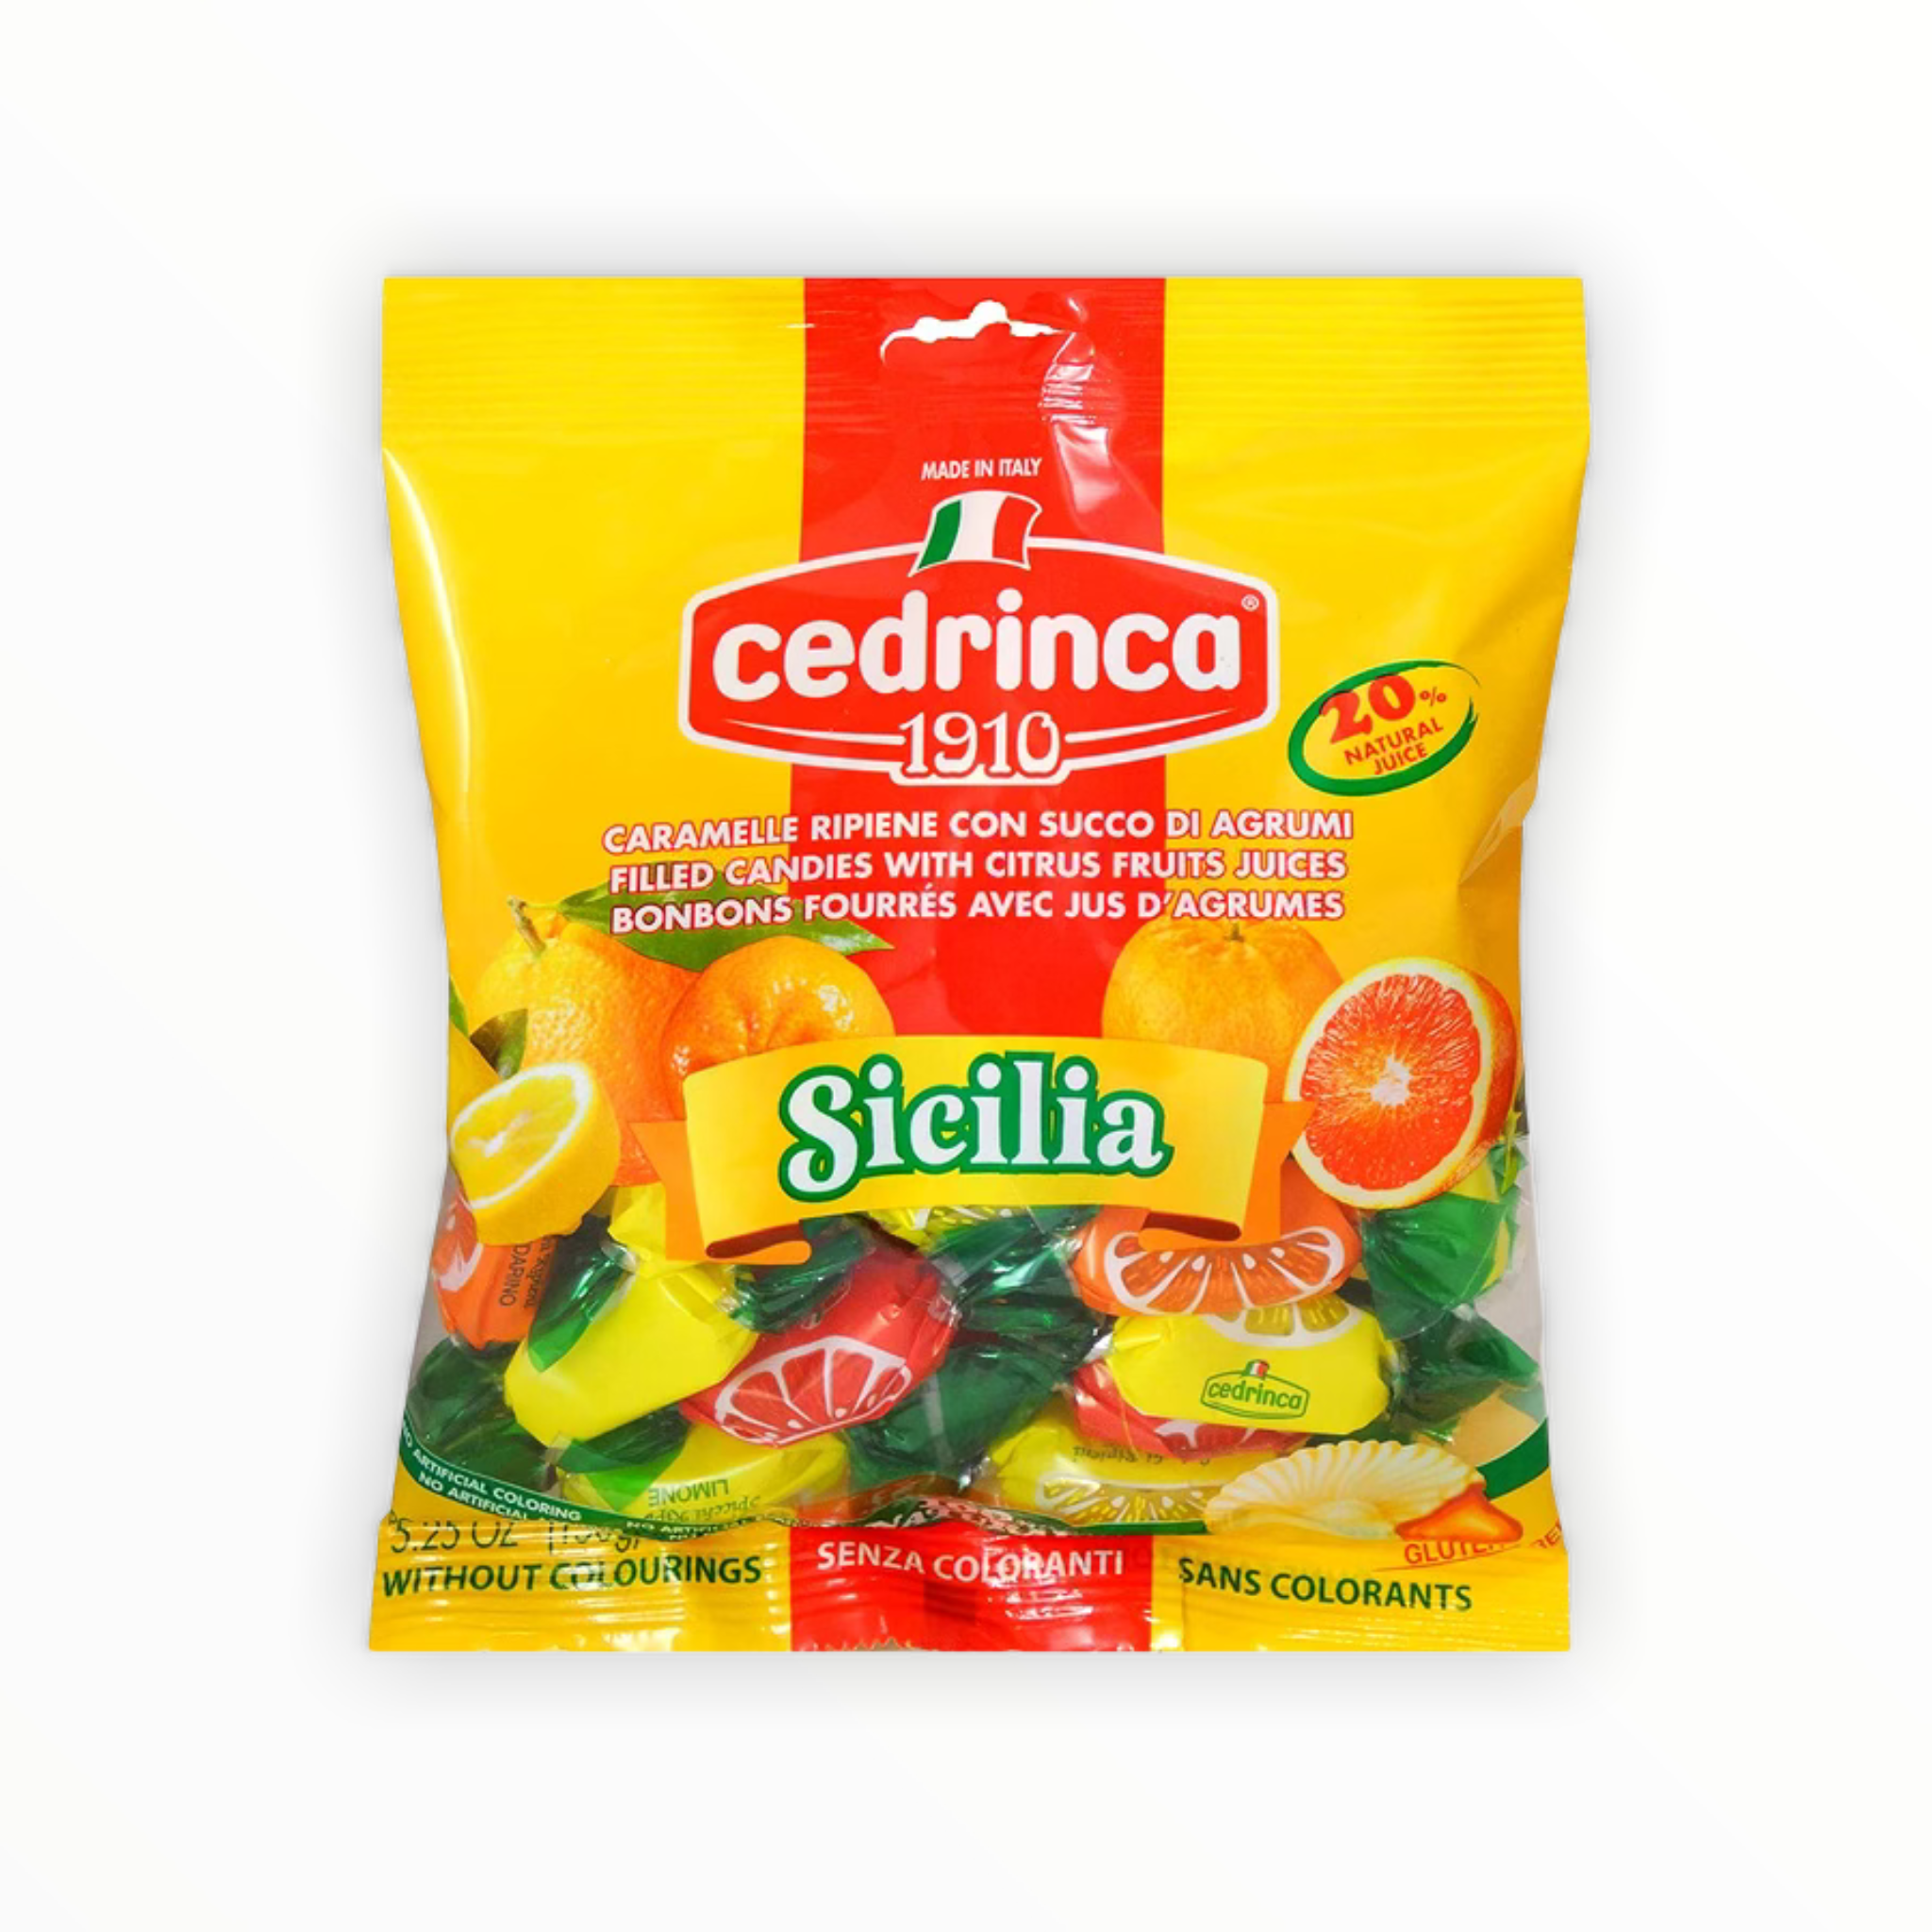 Cedrinca Filled Candies with citrus fruits Juices